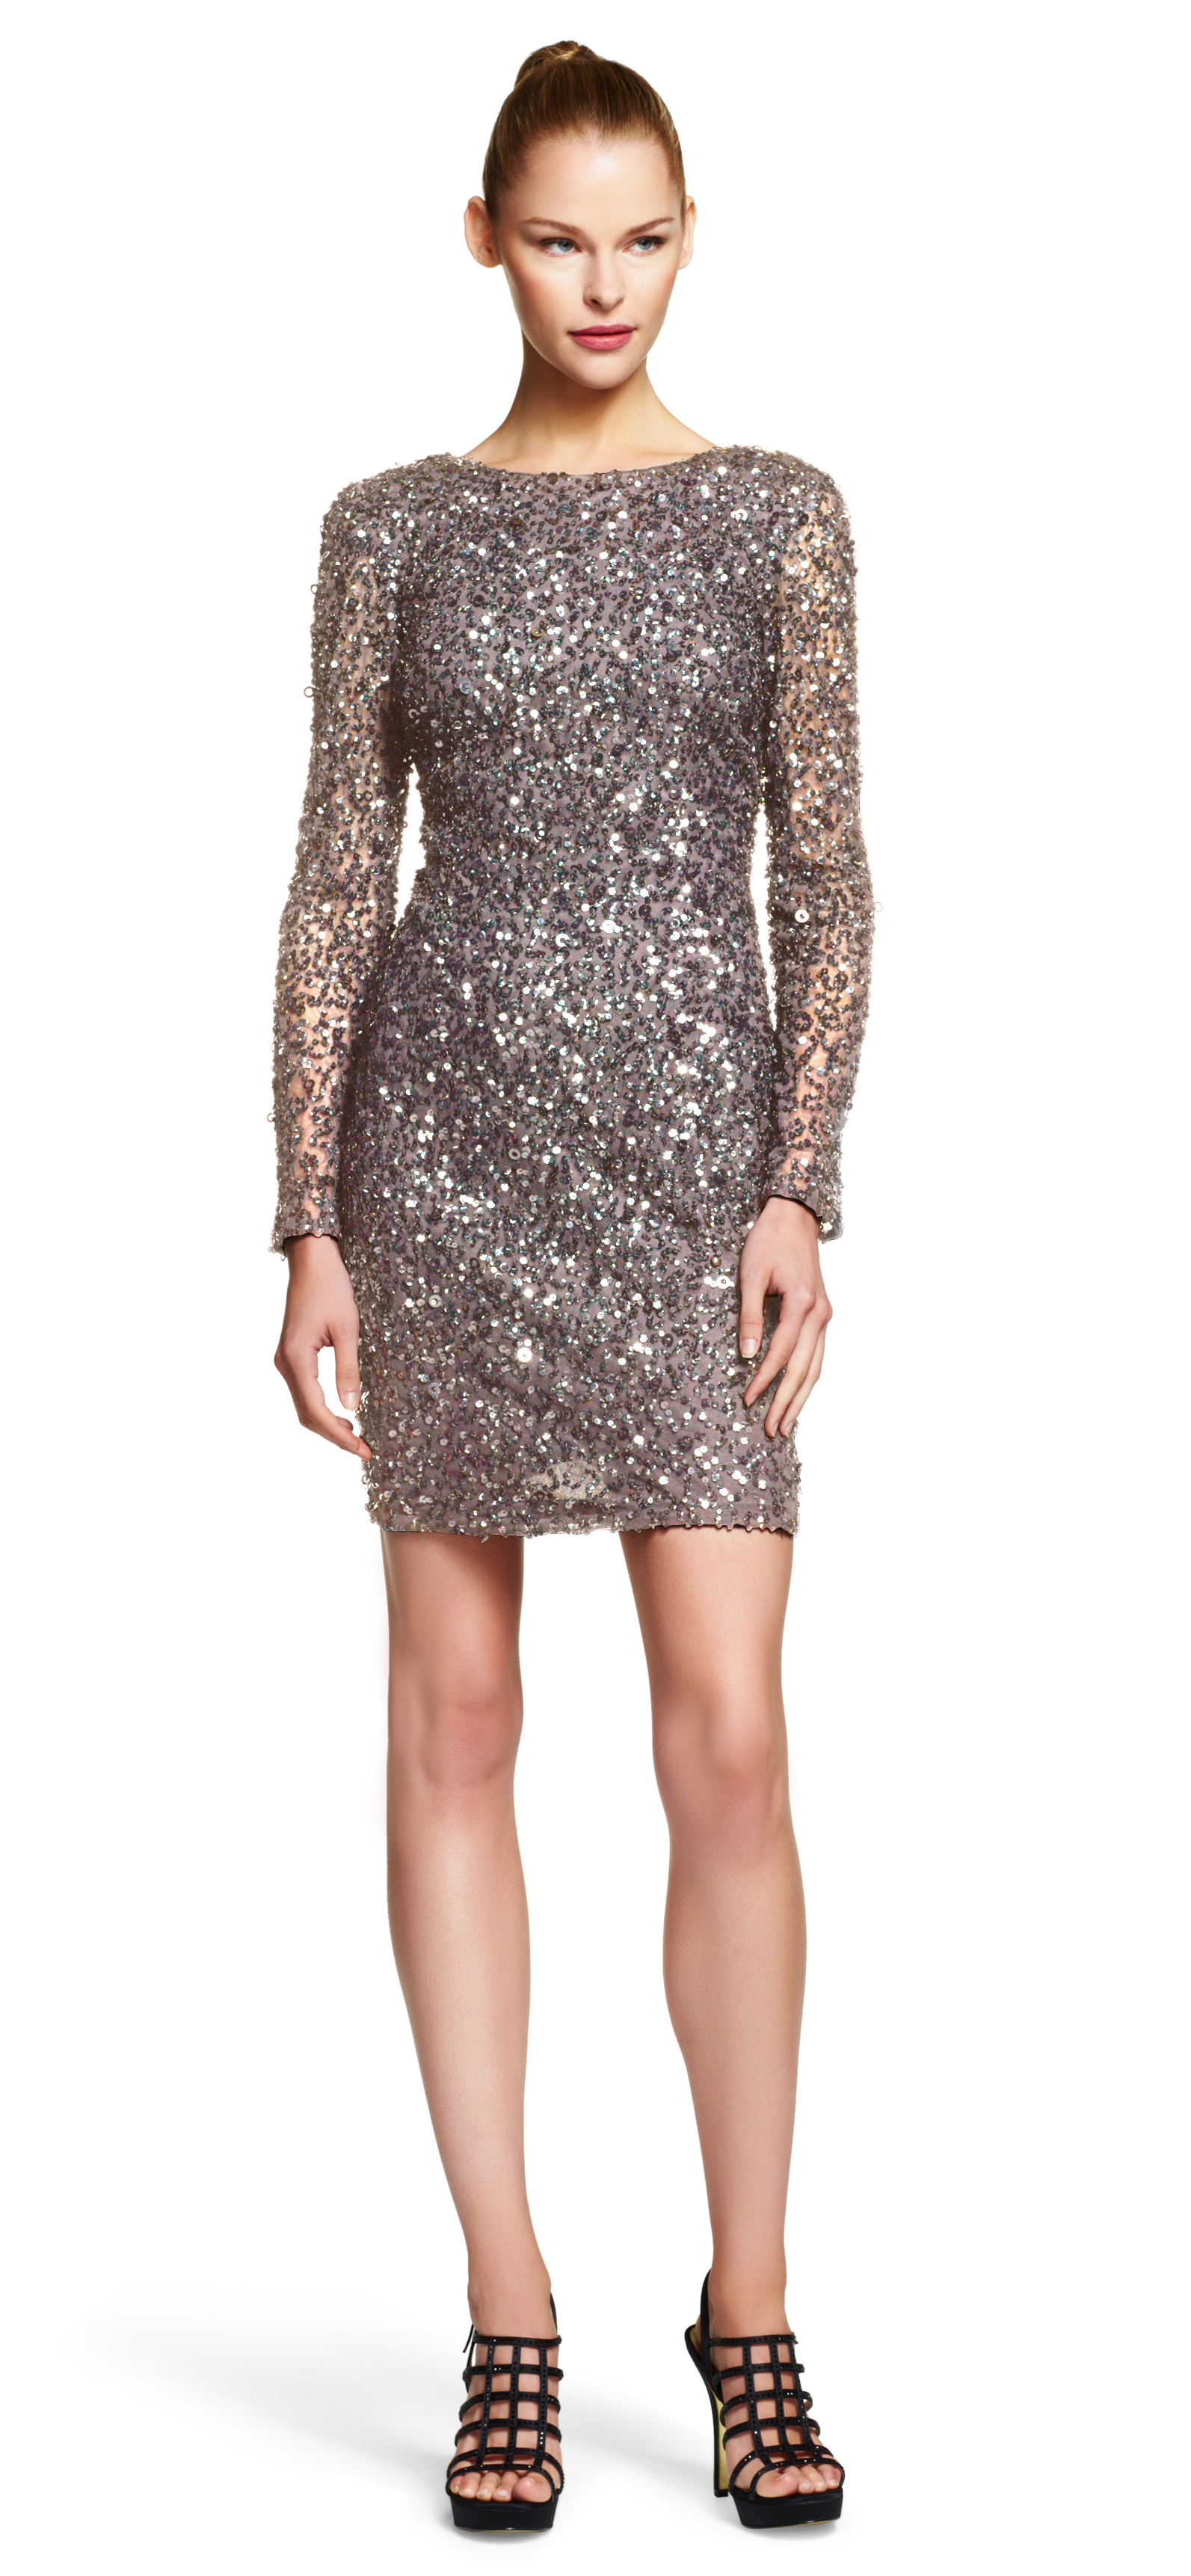 Lyst - Adrianna Papell Long Sleeve Sequin Cocktail Dress ...